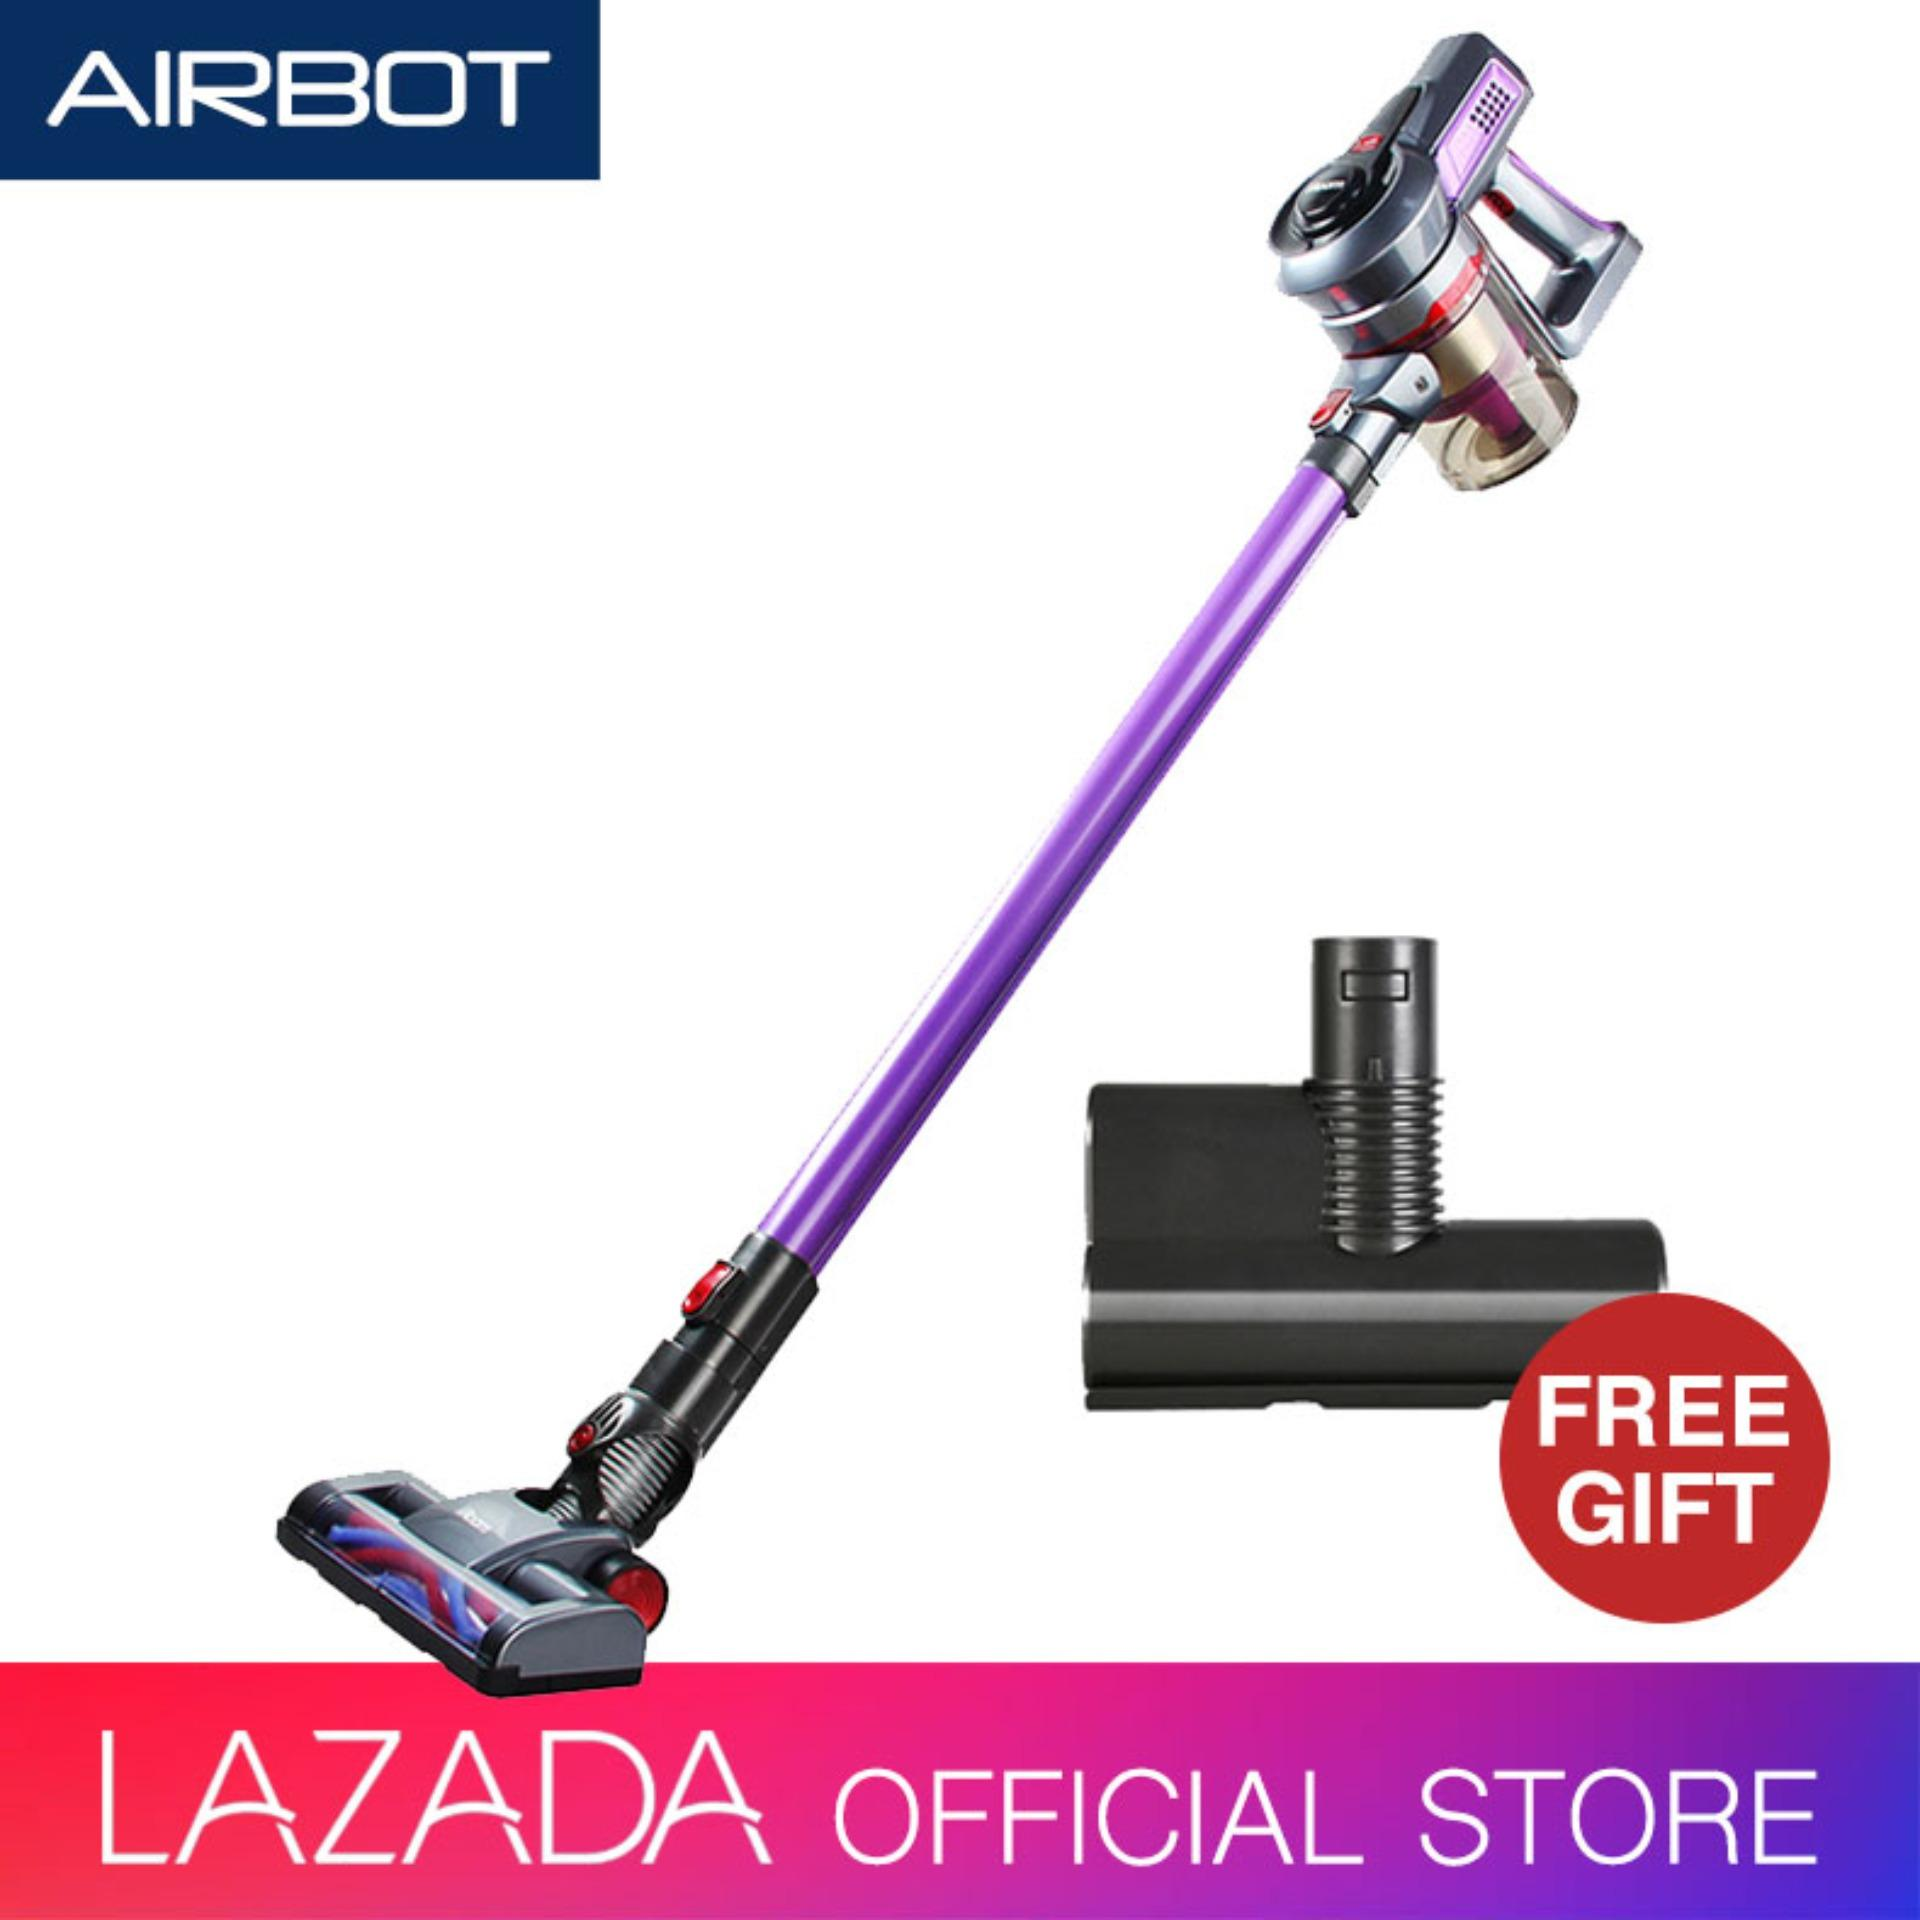 Airbot Iroom Model Fluffy Cordless 2in1 Handheld Stick Vacuum Cleaner Portable Car Vacuum Cleaner ( 6 Months Warranty ) By Airbot Certified Store.